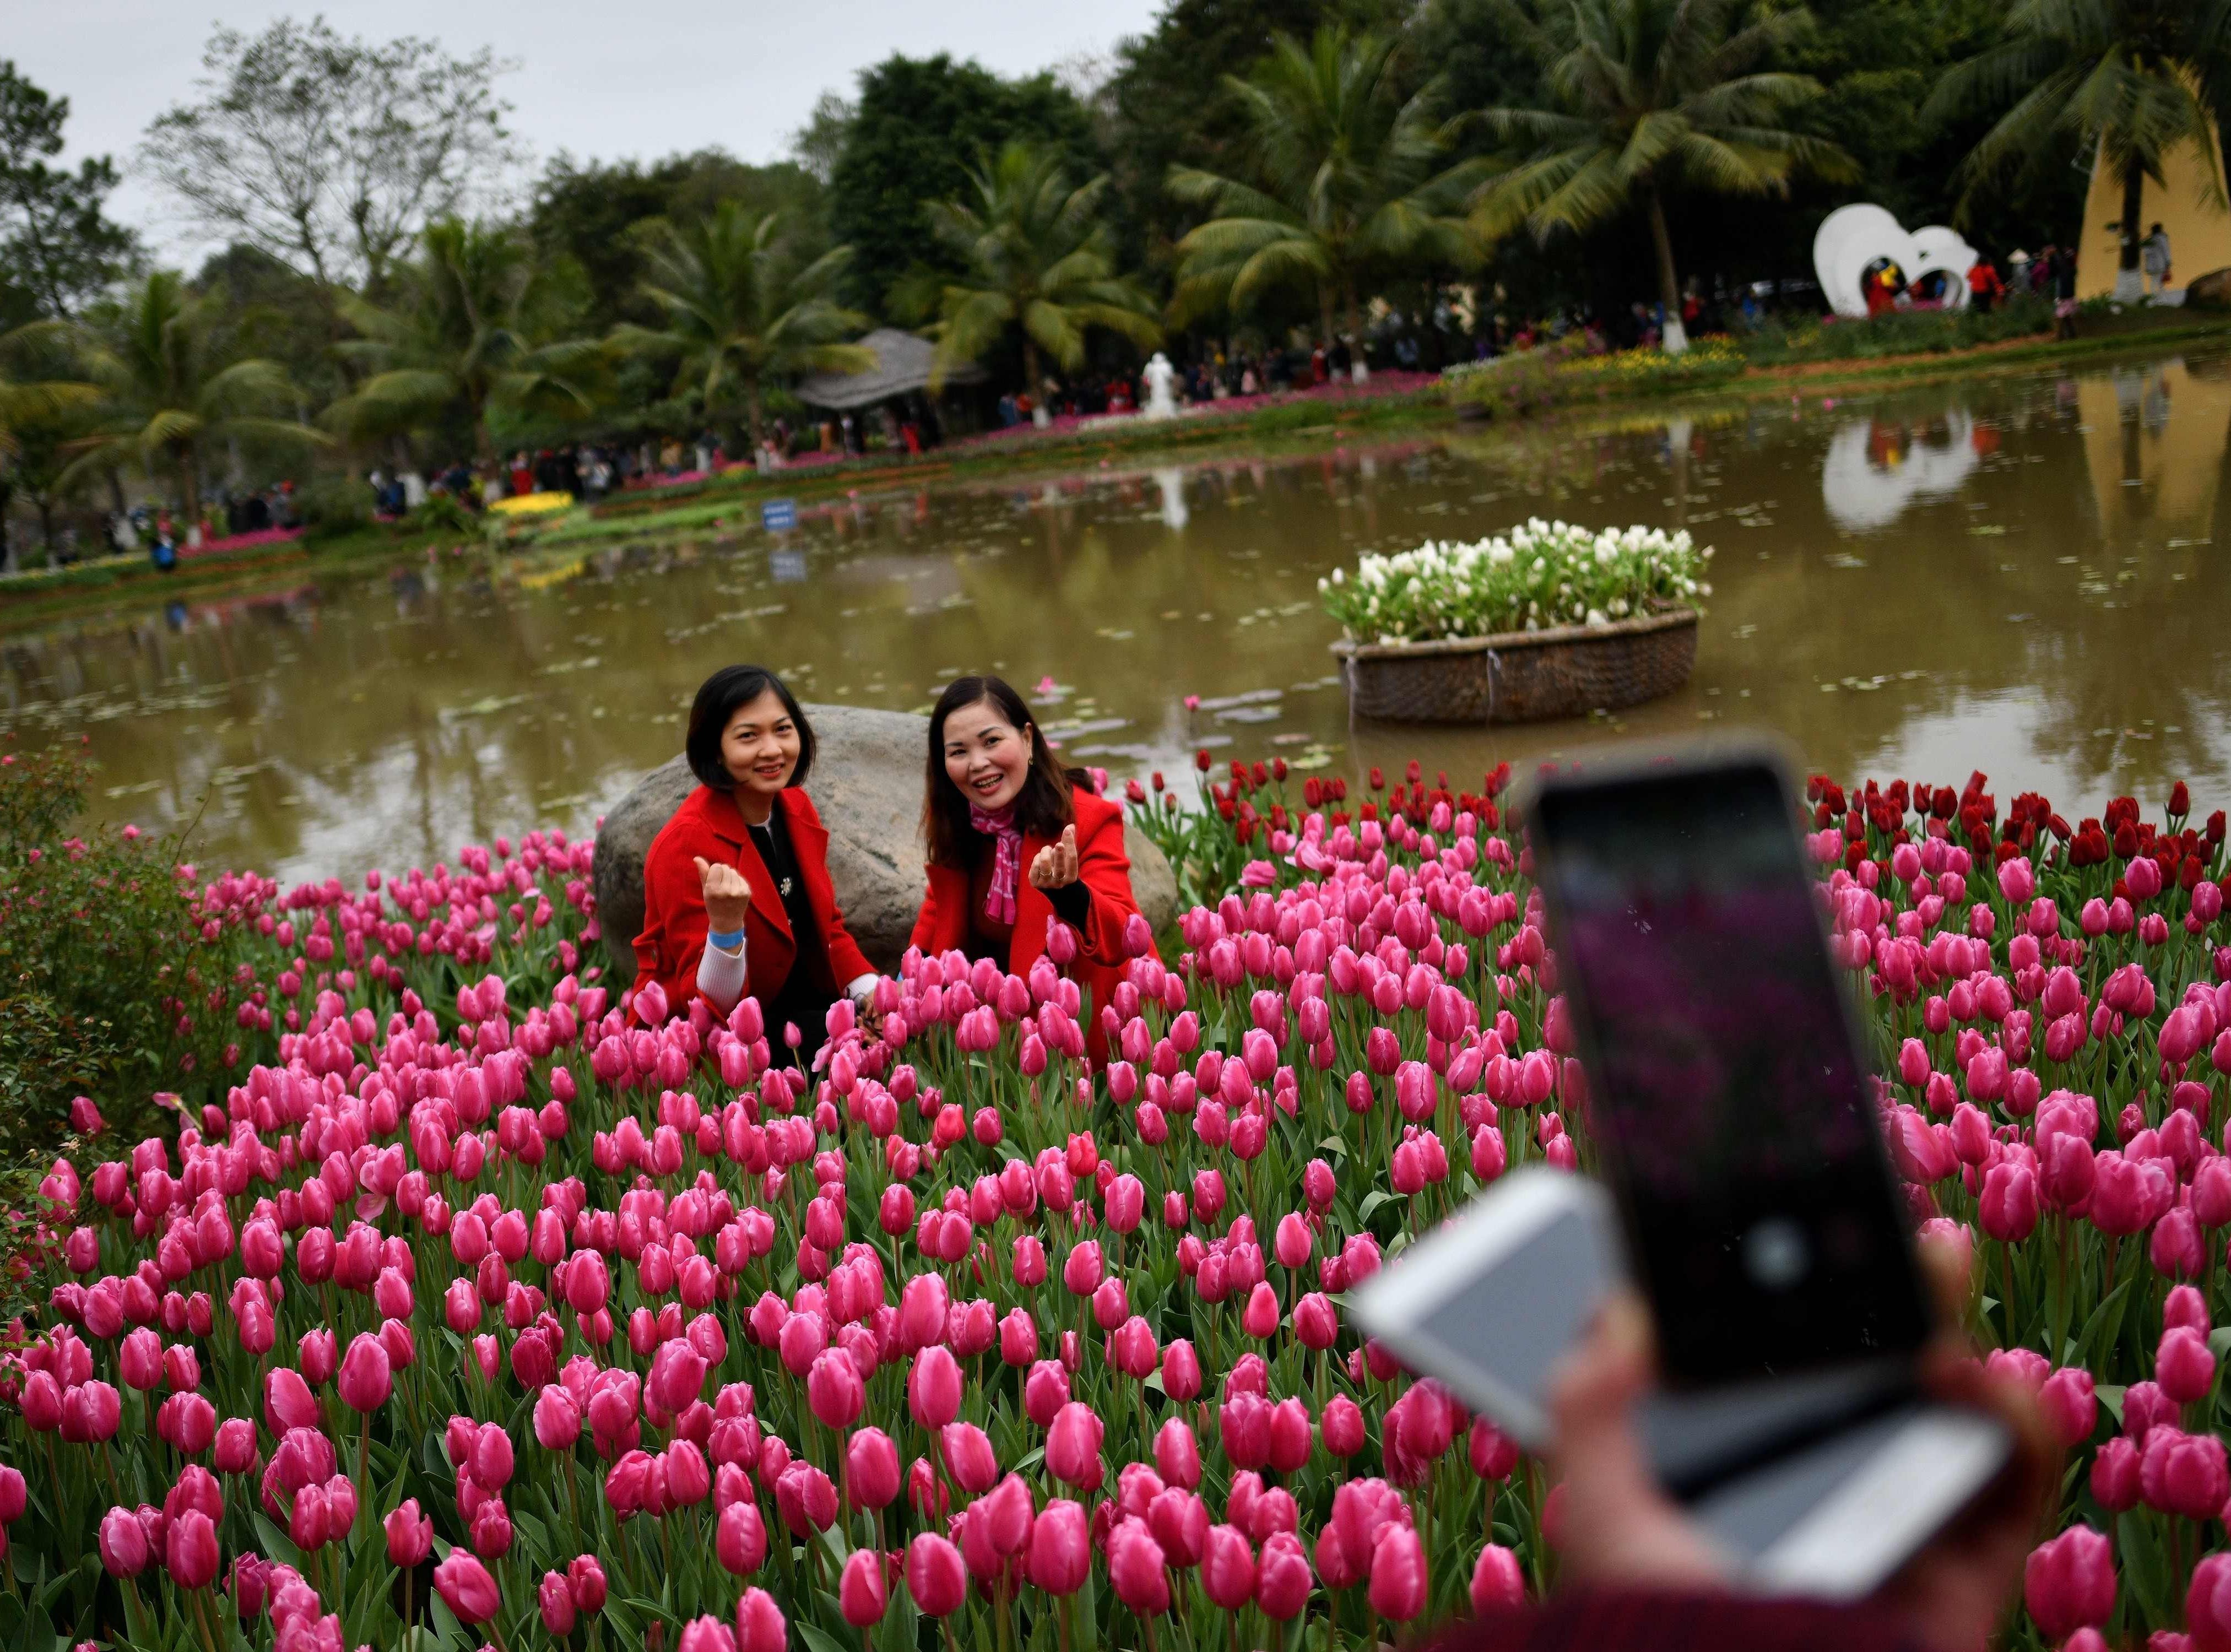 Women pose for photographs at a Tulip festival on New Years day in Hanoi on Jan. 1, 2019.